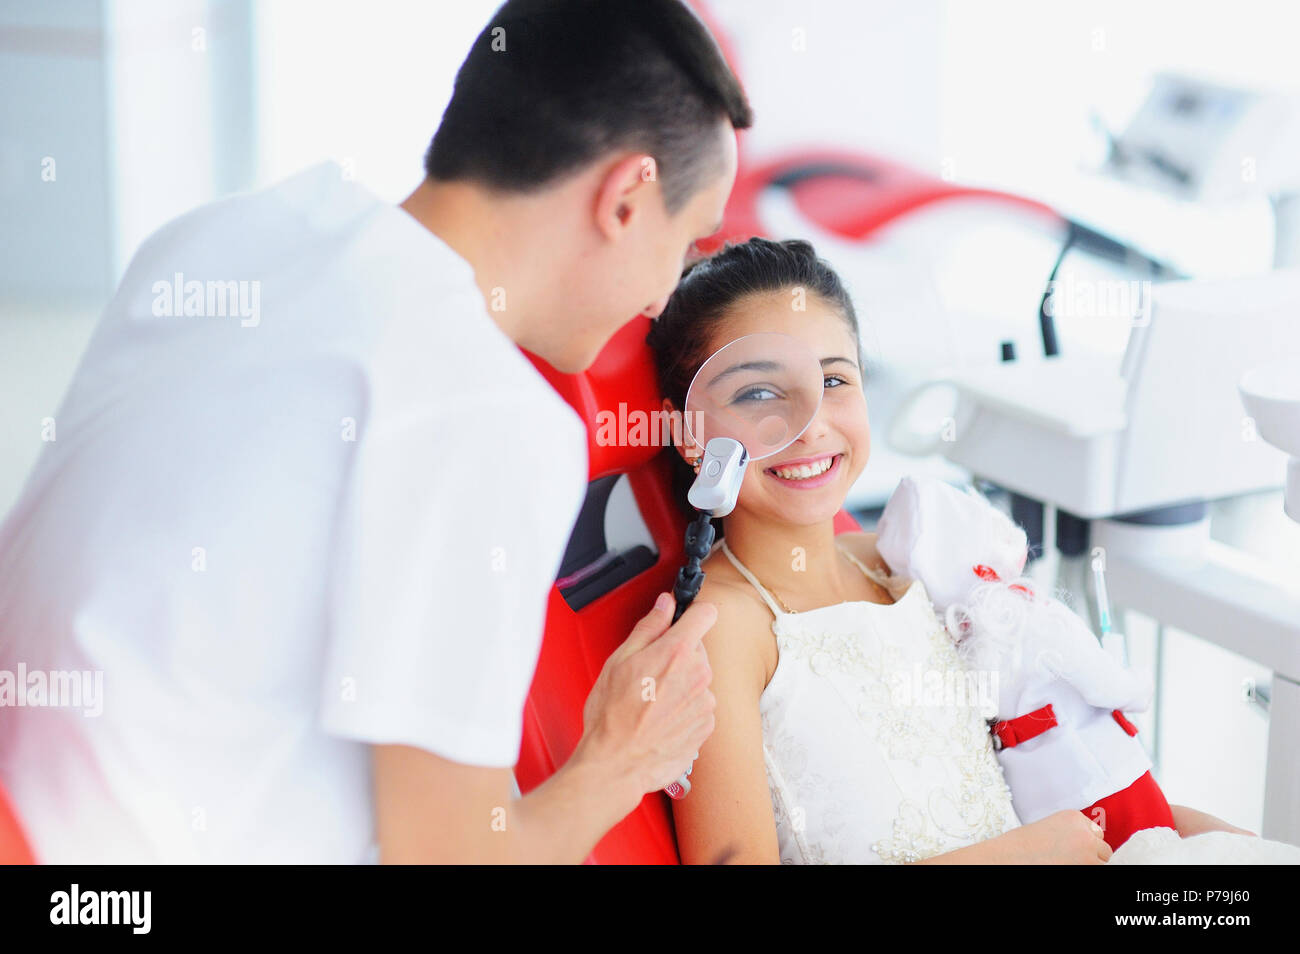 Beautiful smile with white teeth. A dentist examines the oral cavity of a young beautiful girl through a magnifying glass in the dental office. - Stock Image